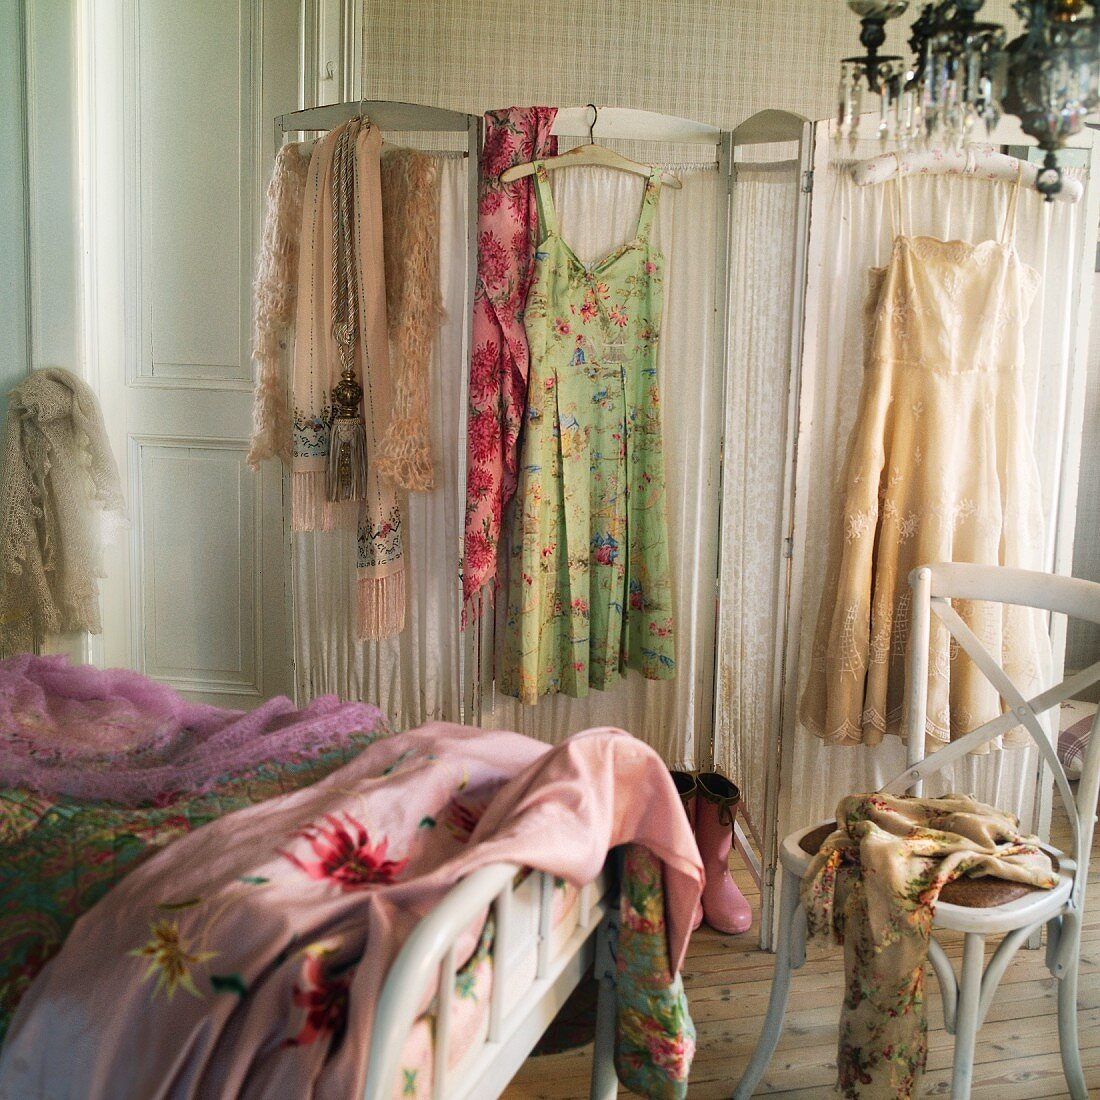 Boudoir with vintage ladies clothing hanging on a screen